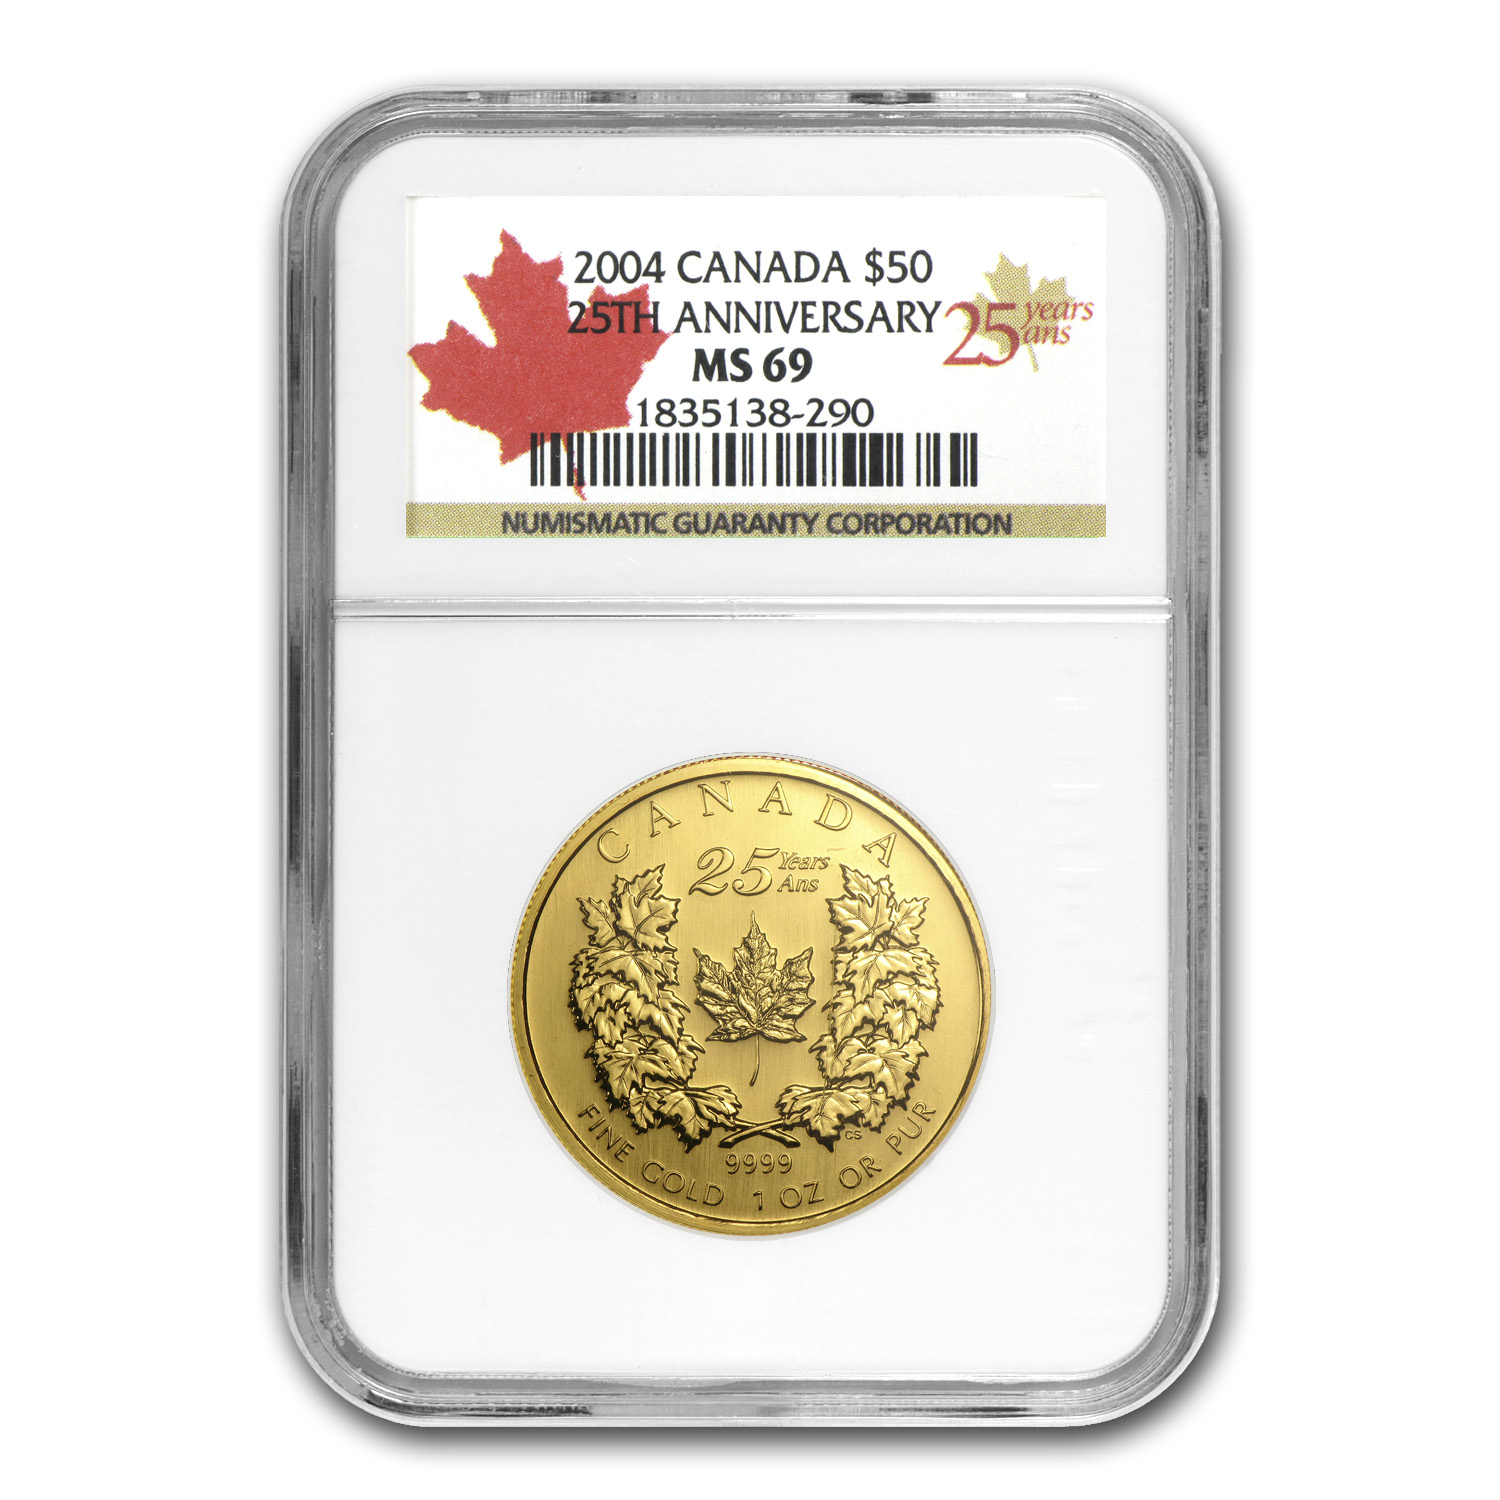 2004 1 oz Gold Canadian Maple Leaf MS-69 NGC (25th Anniv)